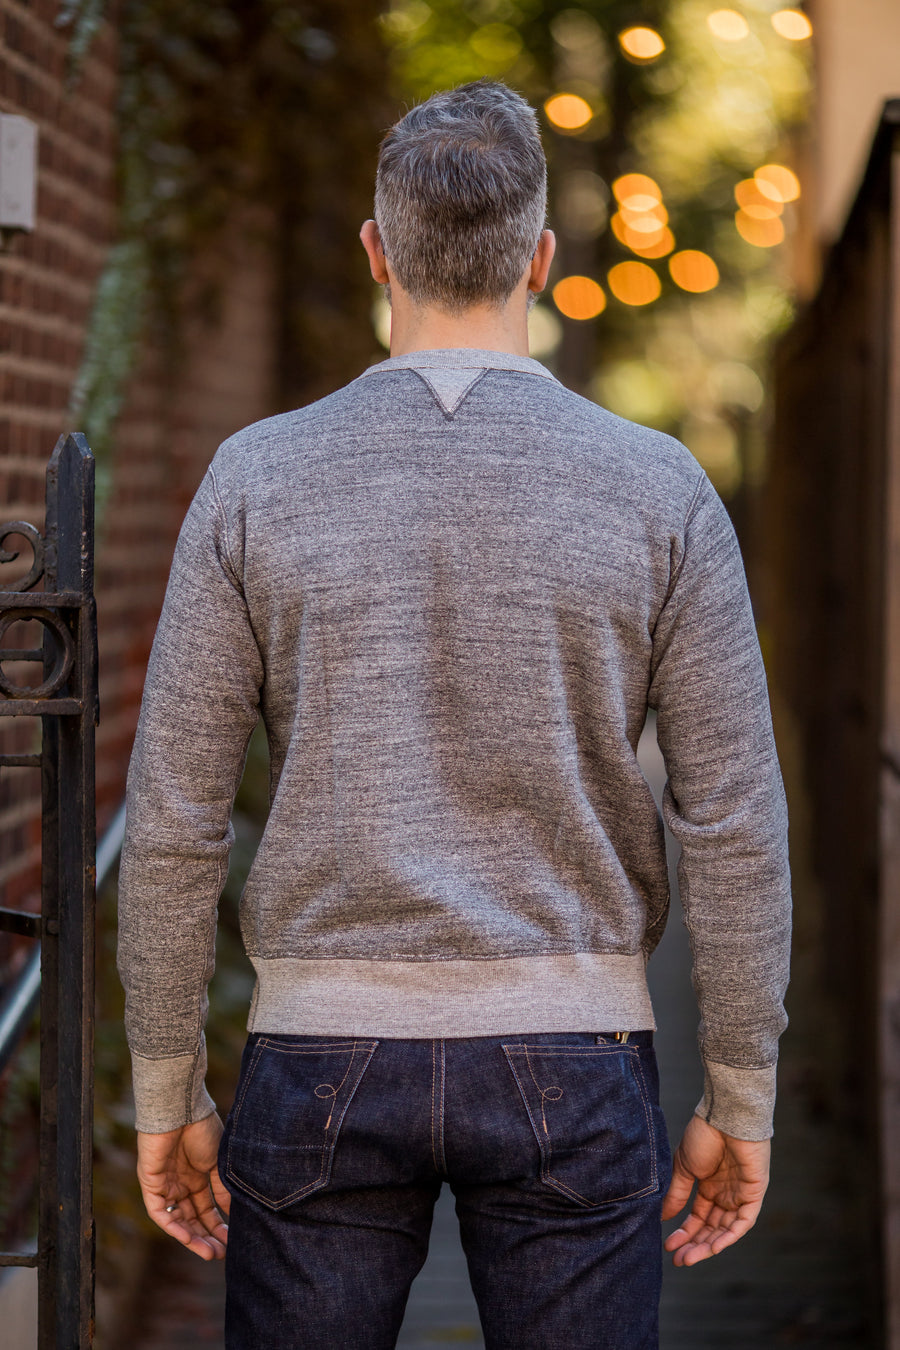 Iron Heart IHSW-34 Heavy Loopwheeled Fleece Lined Sweater - Grey Marl - Franklin & Poe